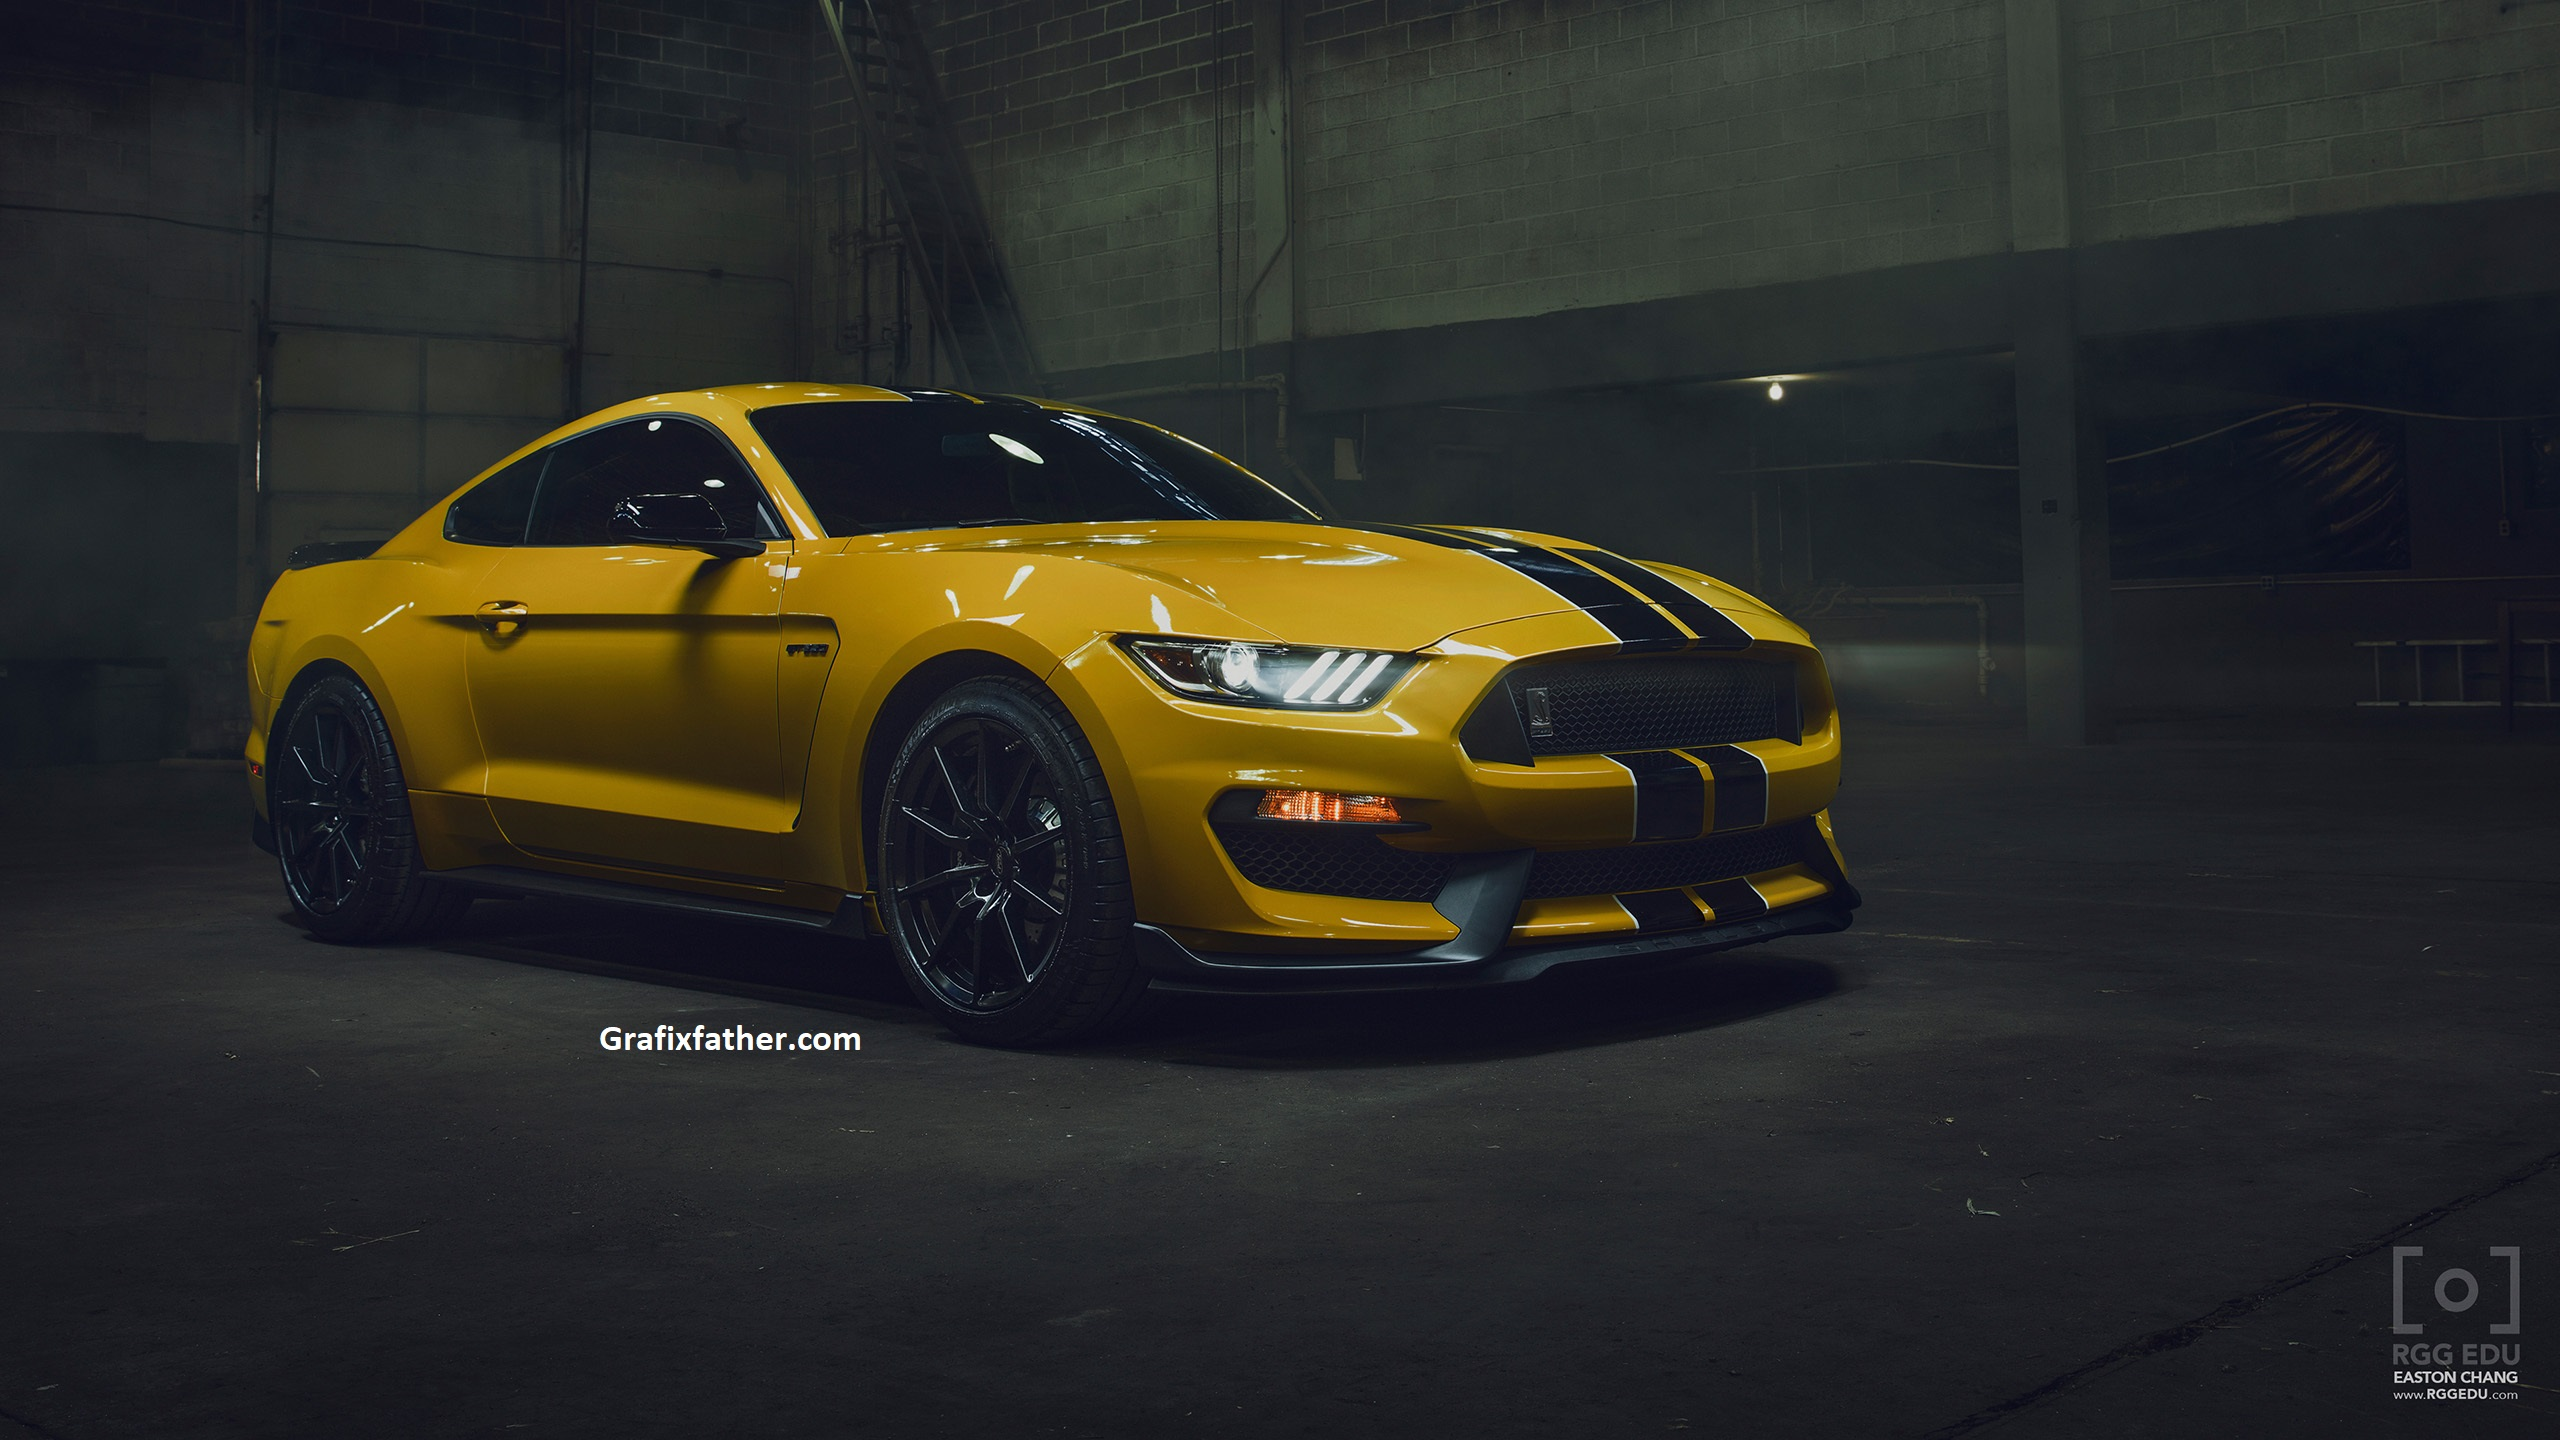 Car Photography & Retouching with Easton Chang